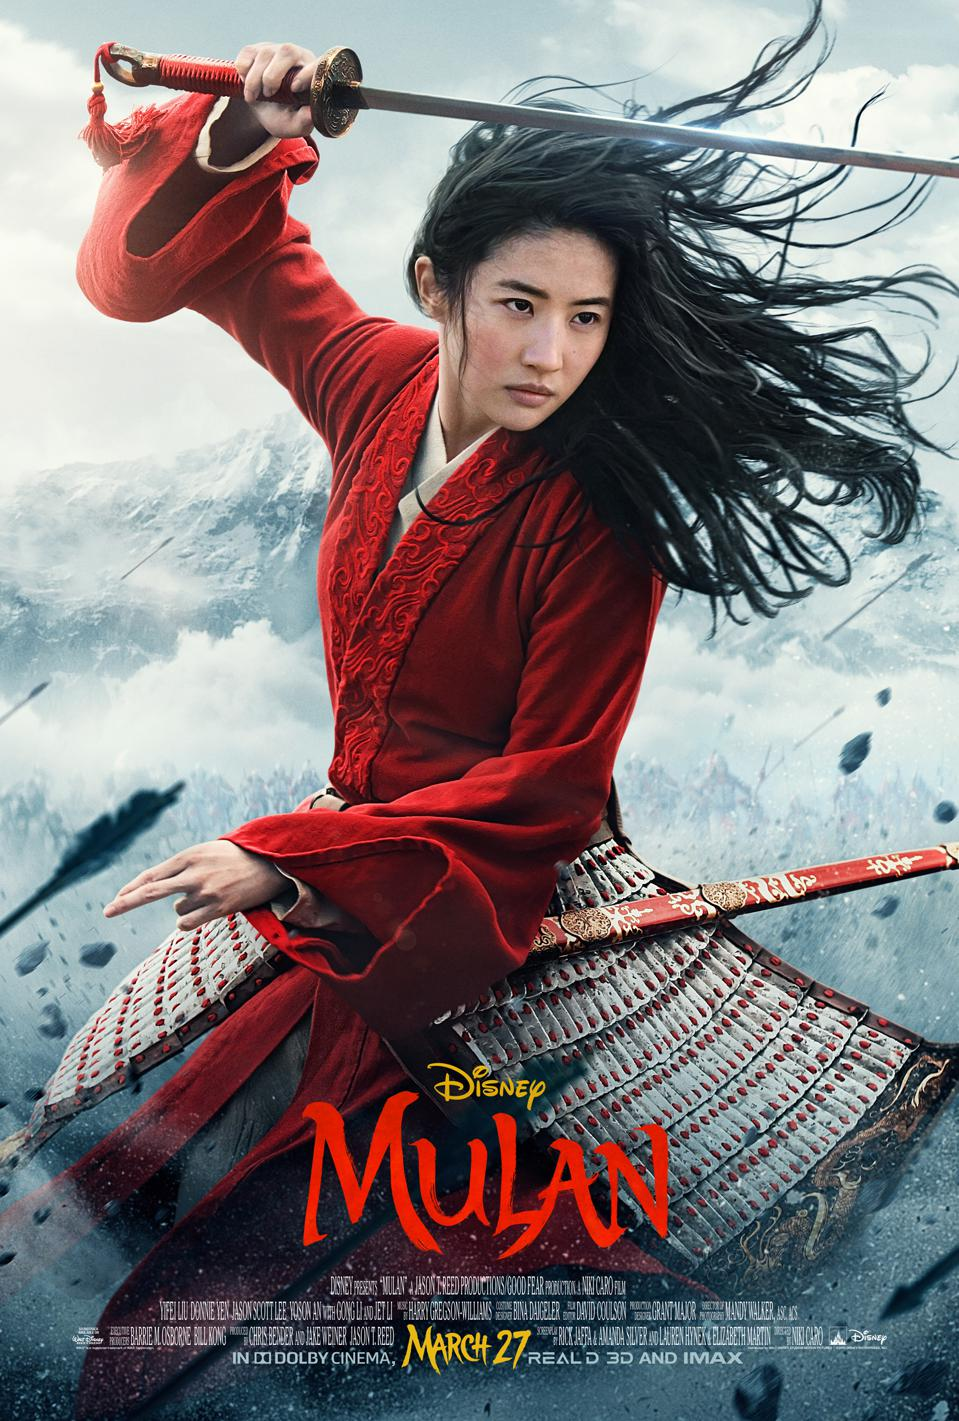 Official poster for ″Mulan″